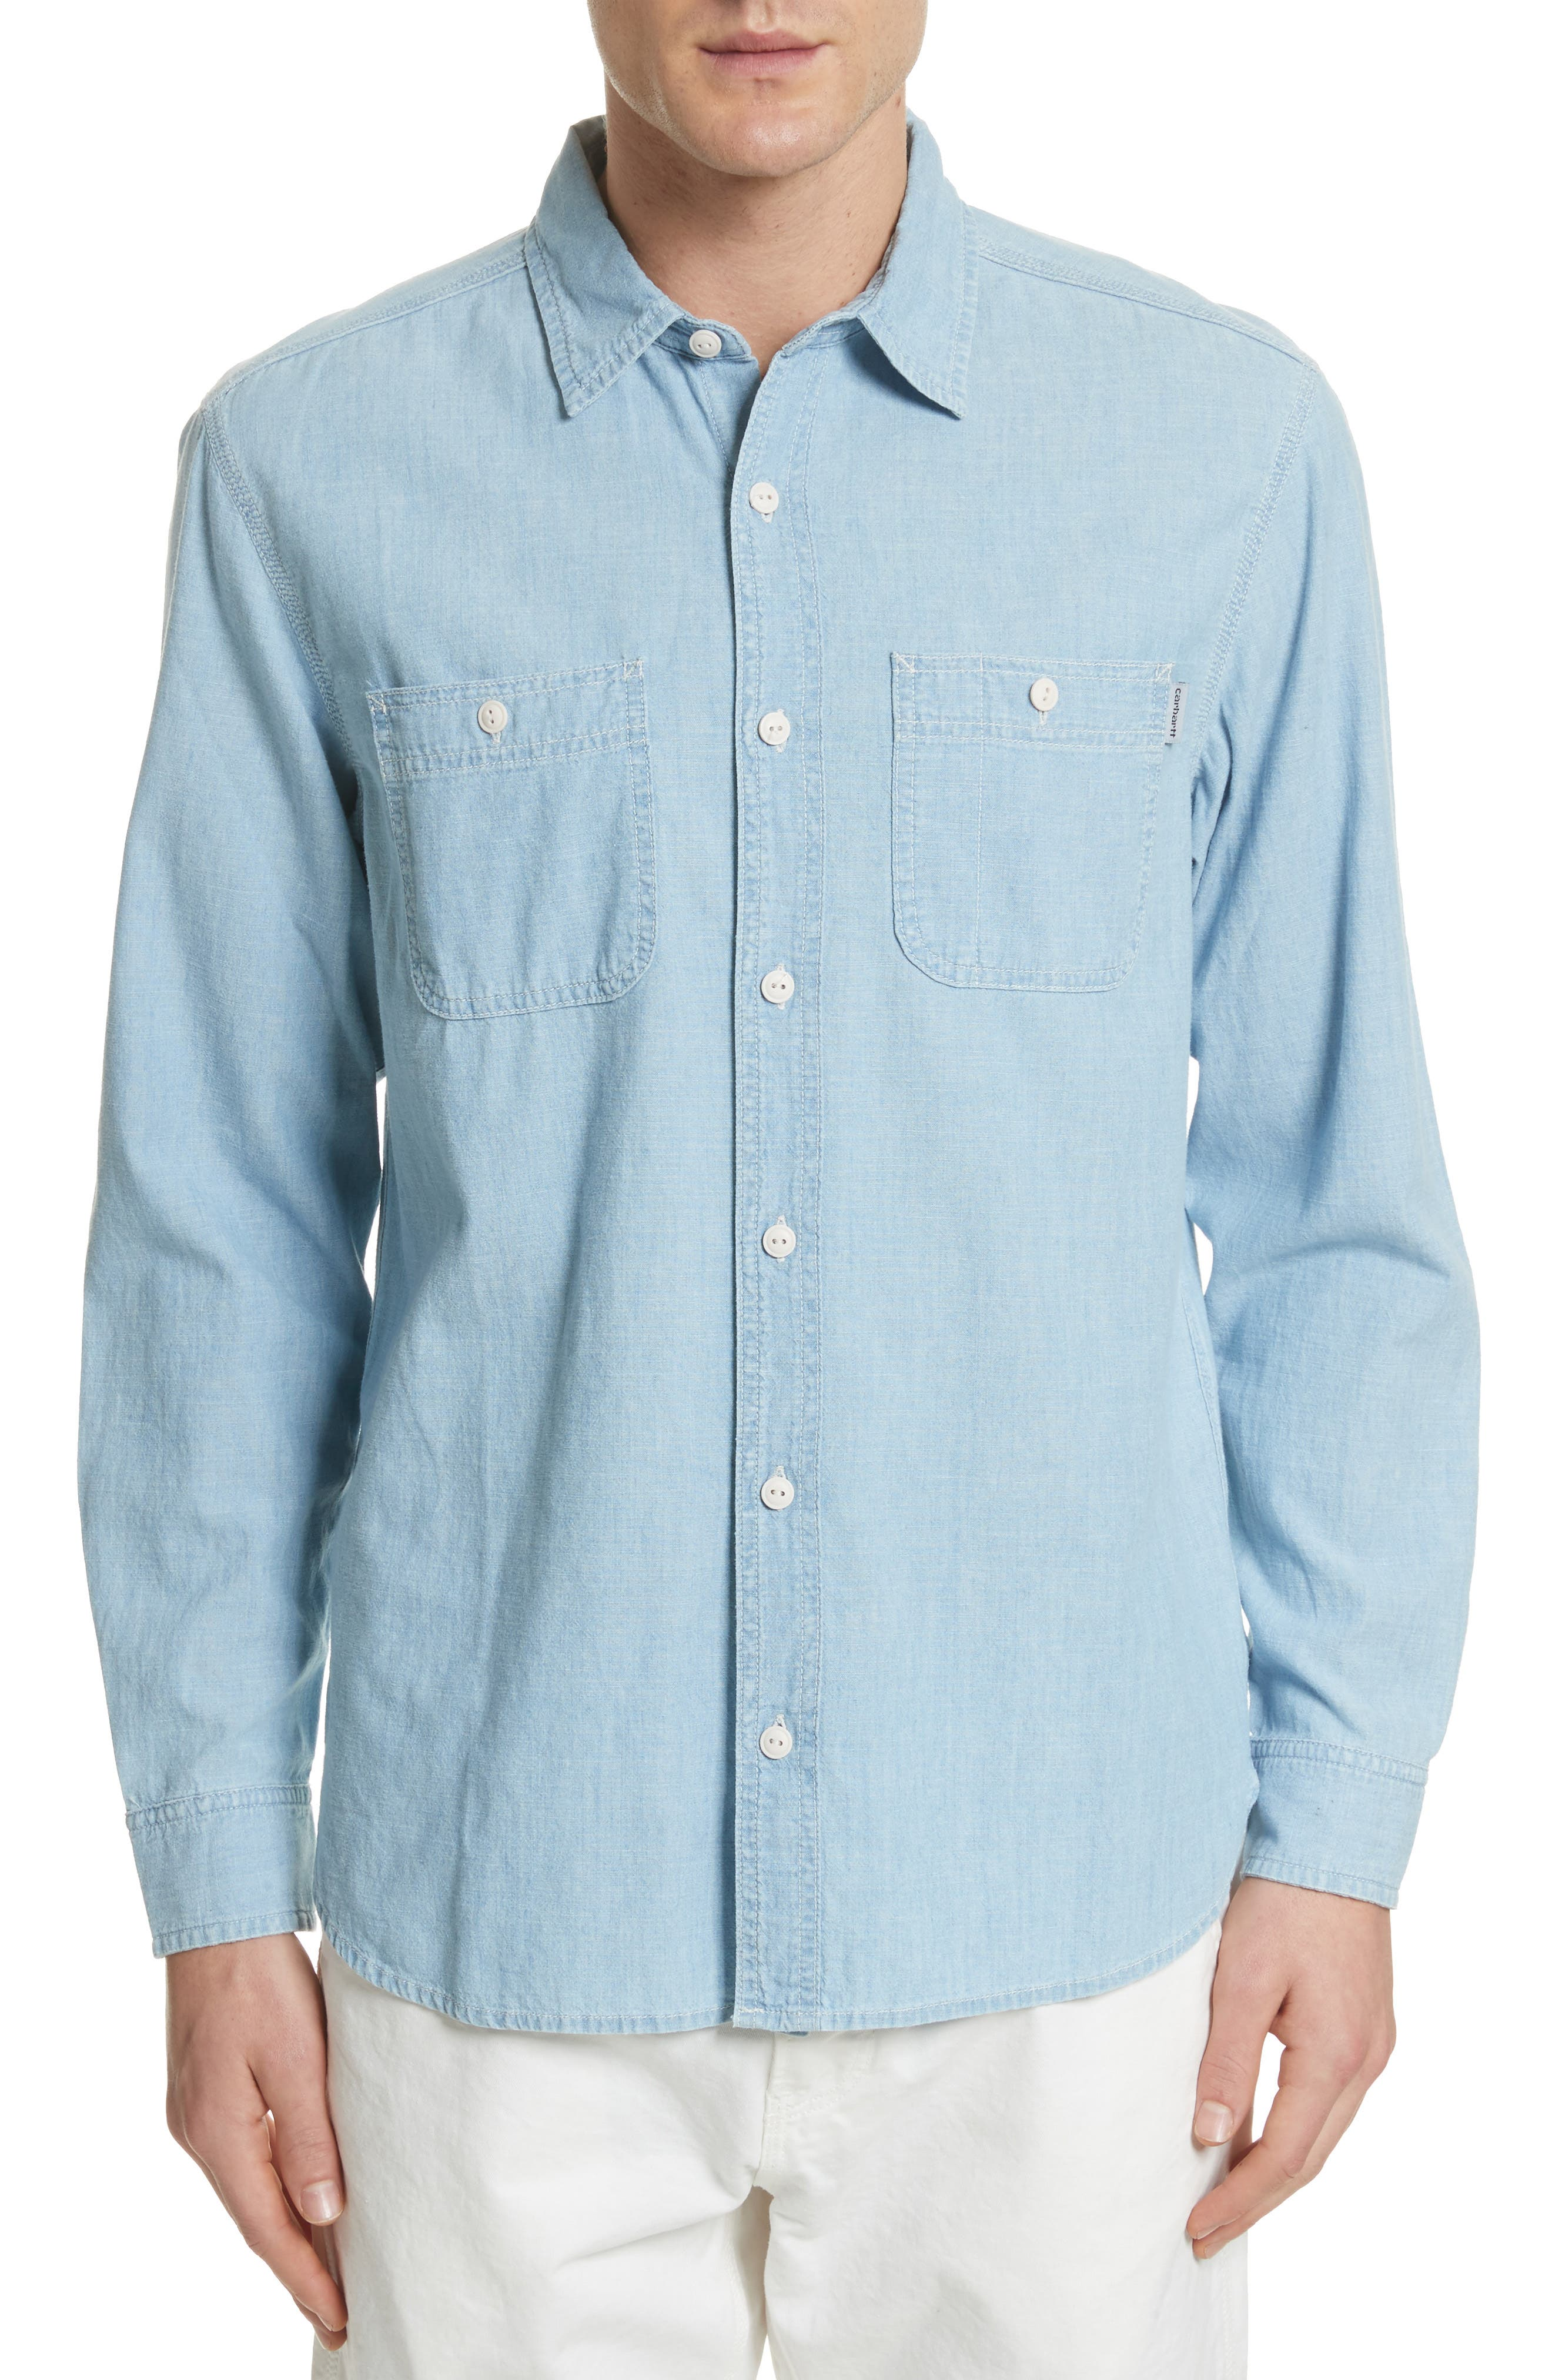 Clink Chambray Shirt,                             Main thumbnail 1, color,                             Blue Stone Washed